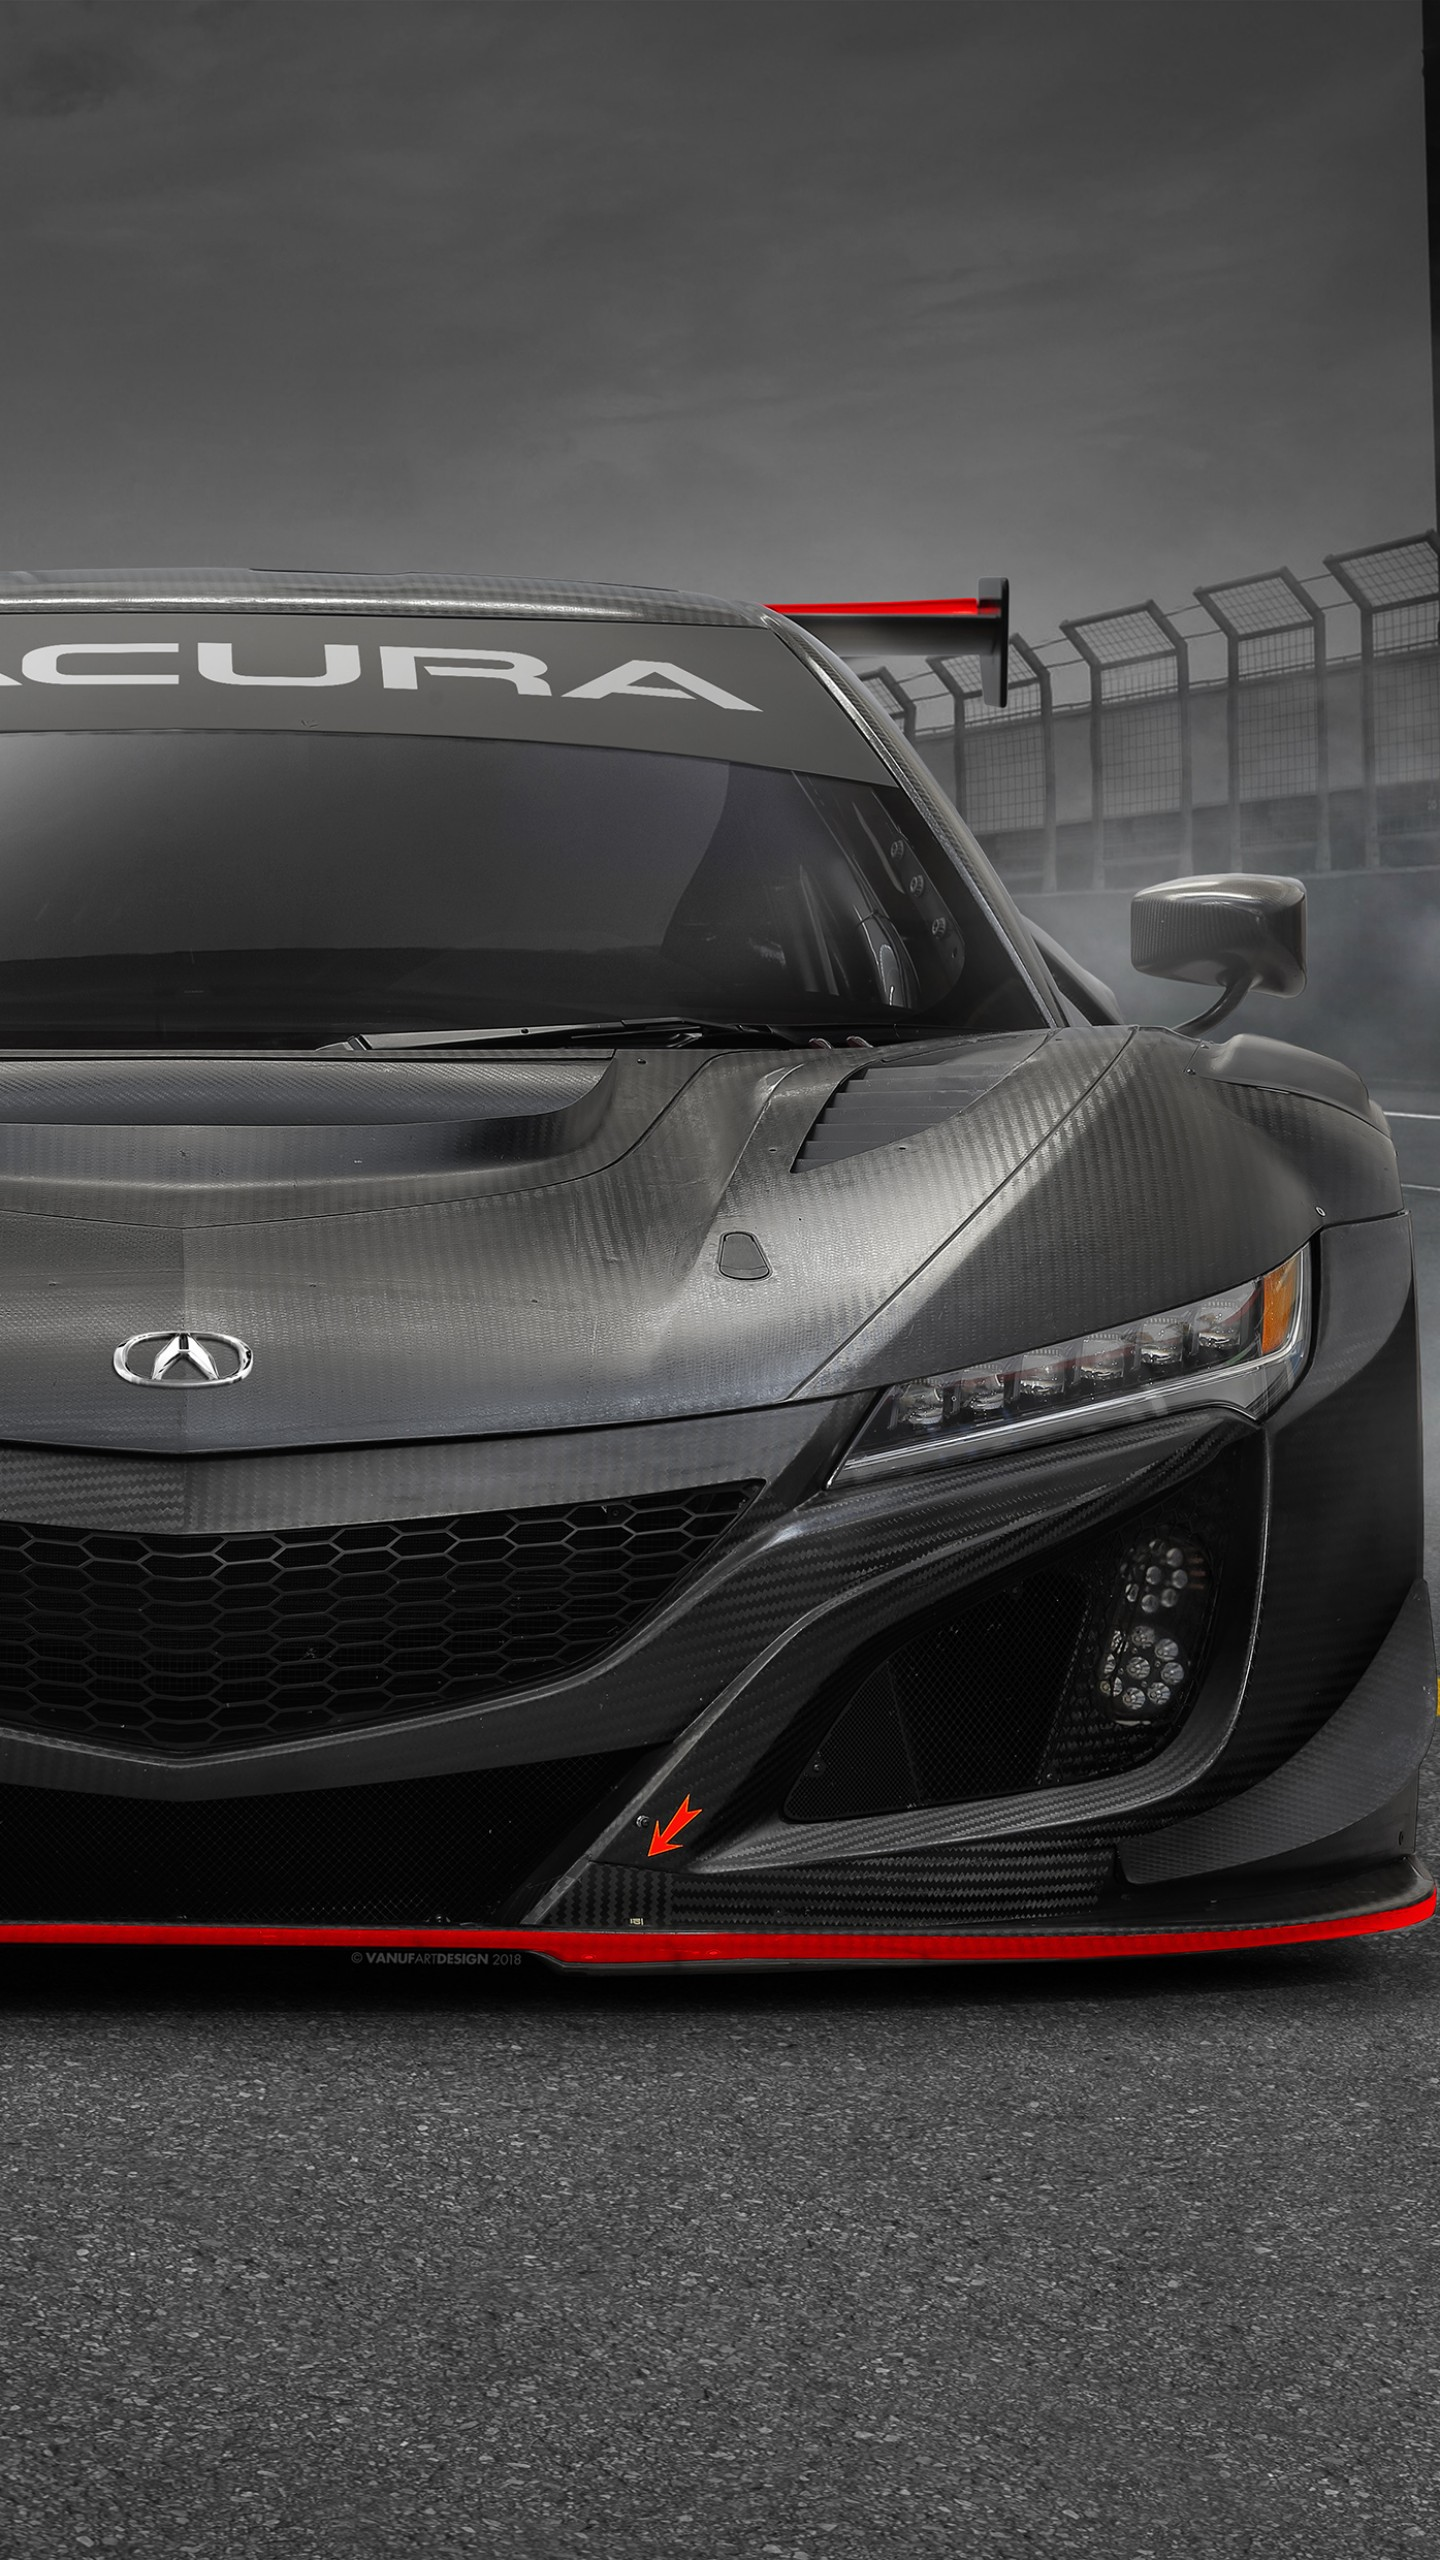 Wallpaper Acura Nsx Gt3 Evo 2019 Cars Supercar 4k Cars Bikes